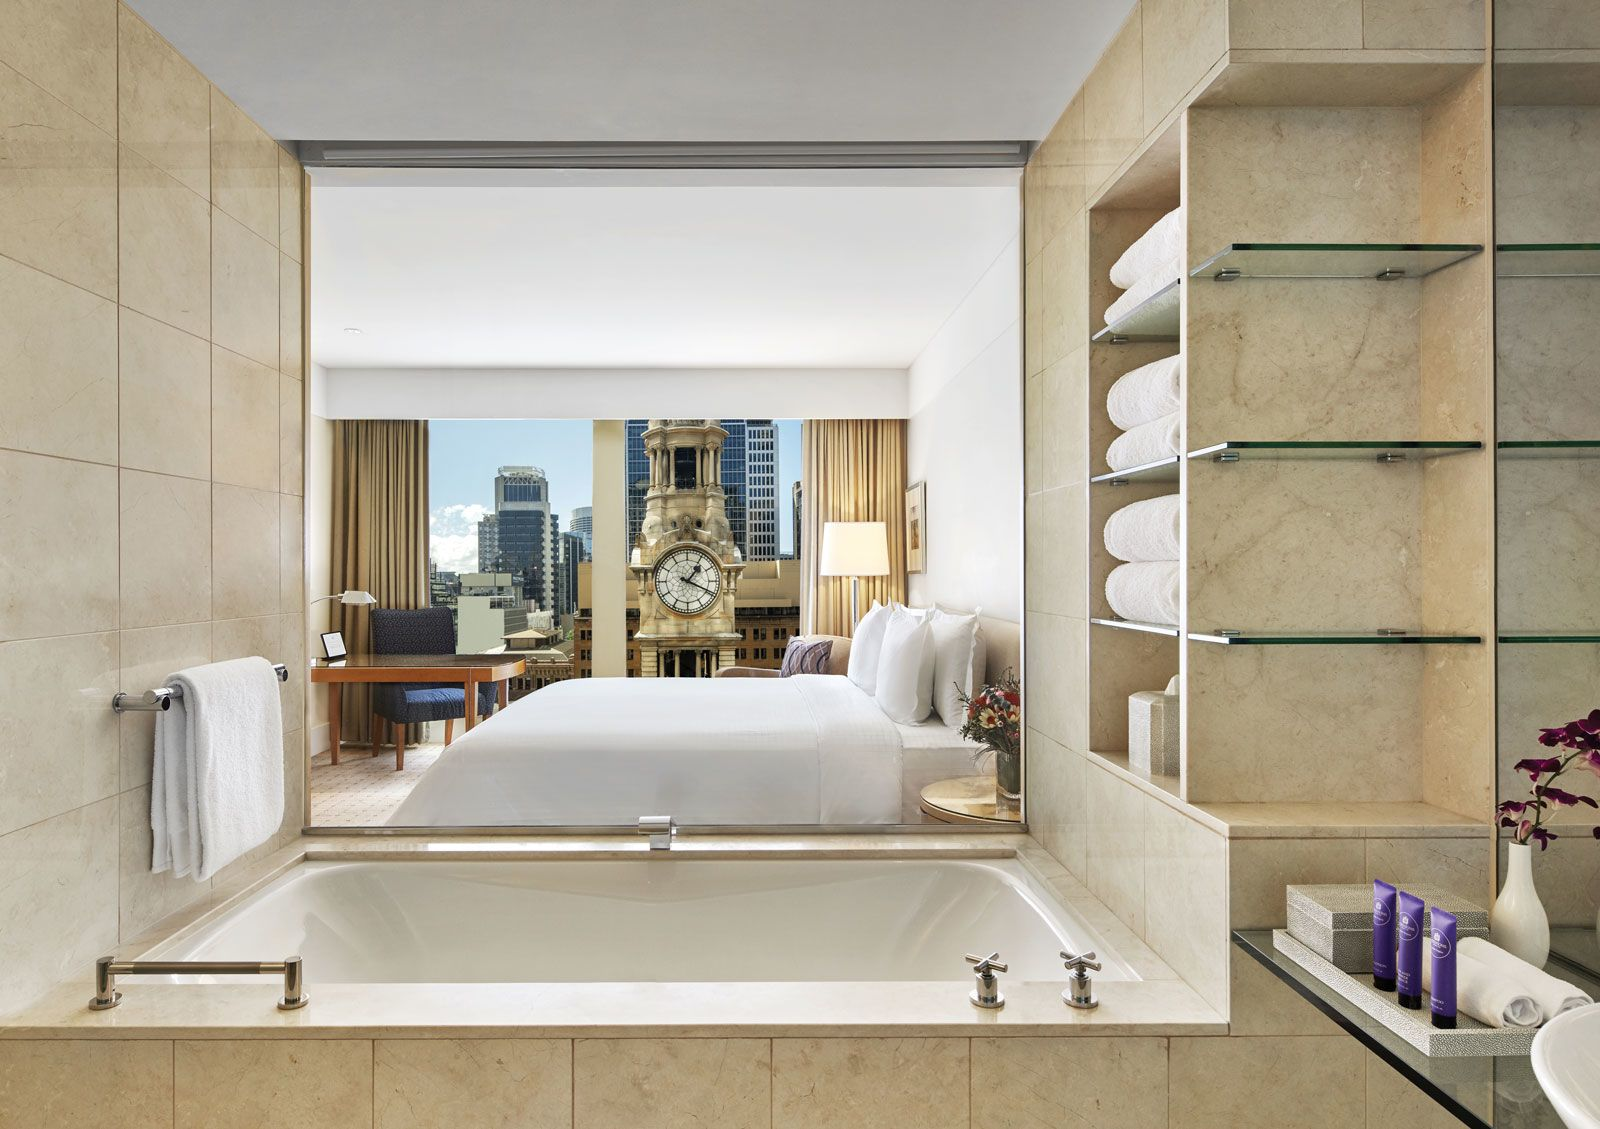 A Tower Deluxe King room at the Fullerton Hotel Sydney, which opened last fall in a building that dates to 1891.